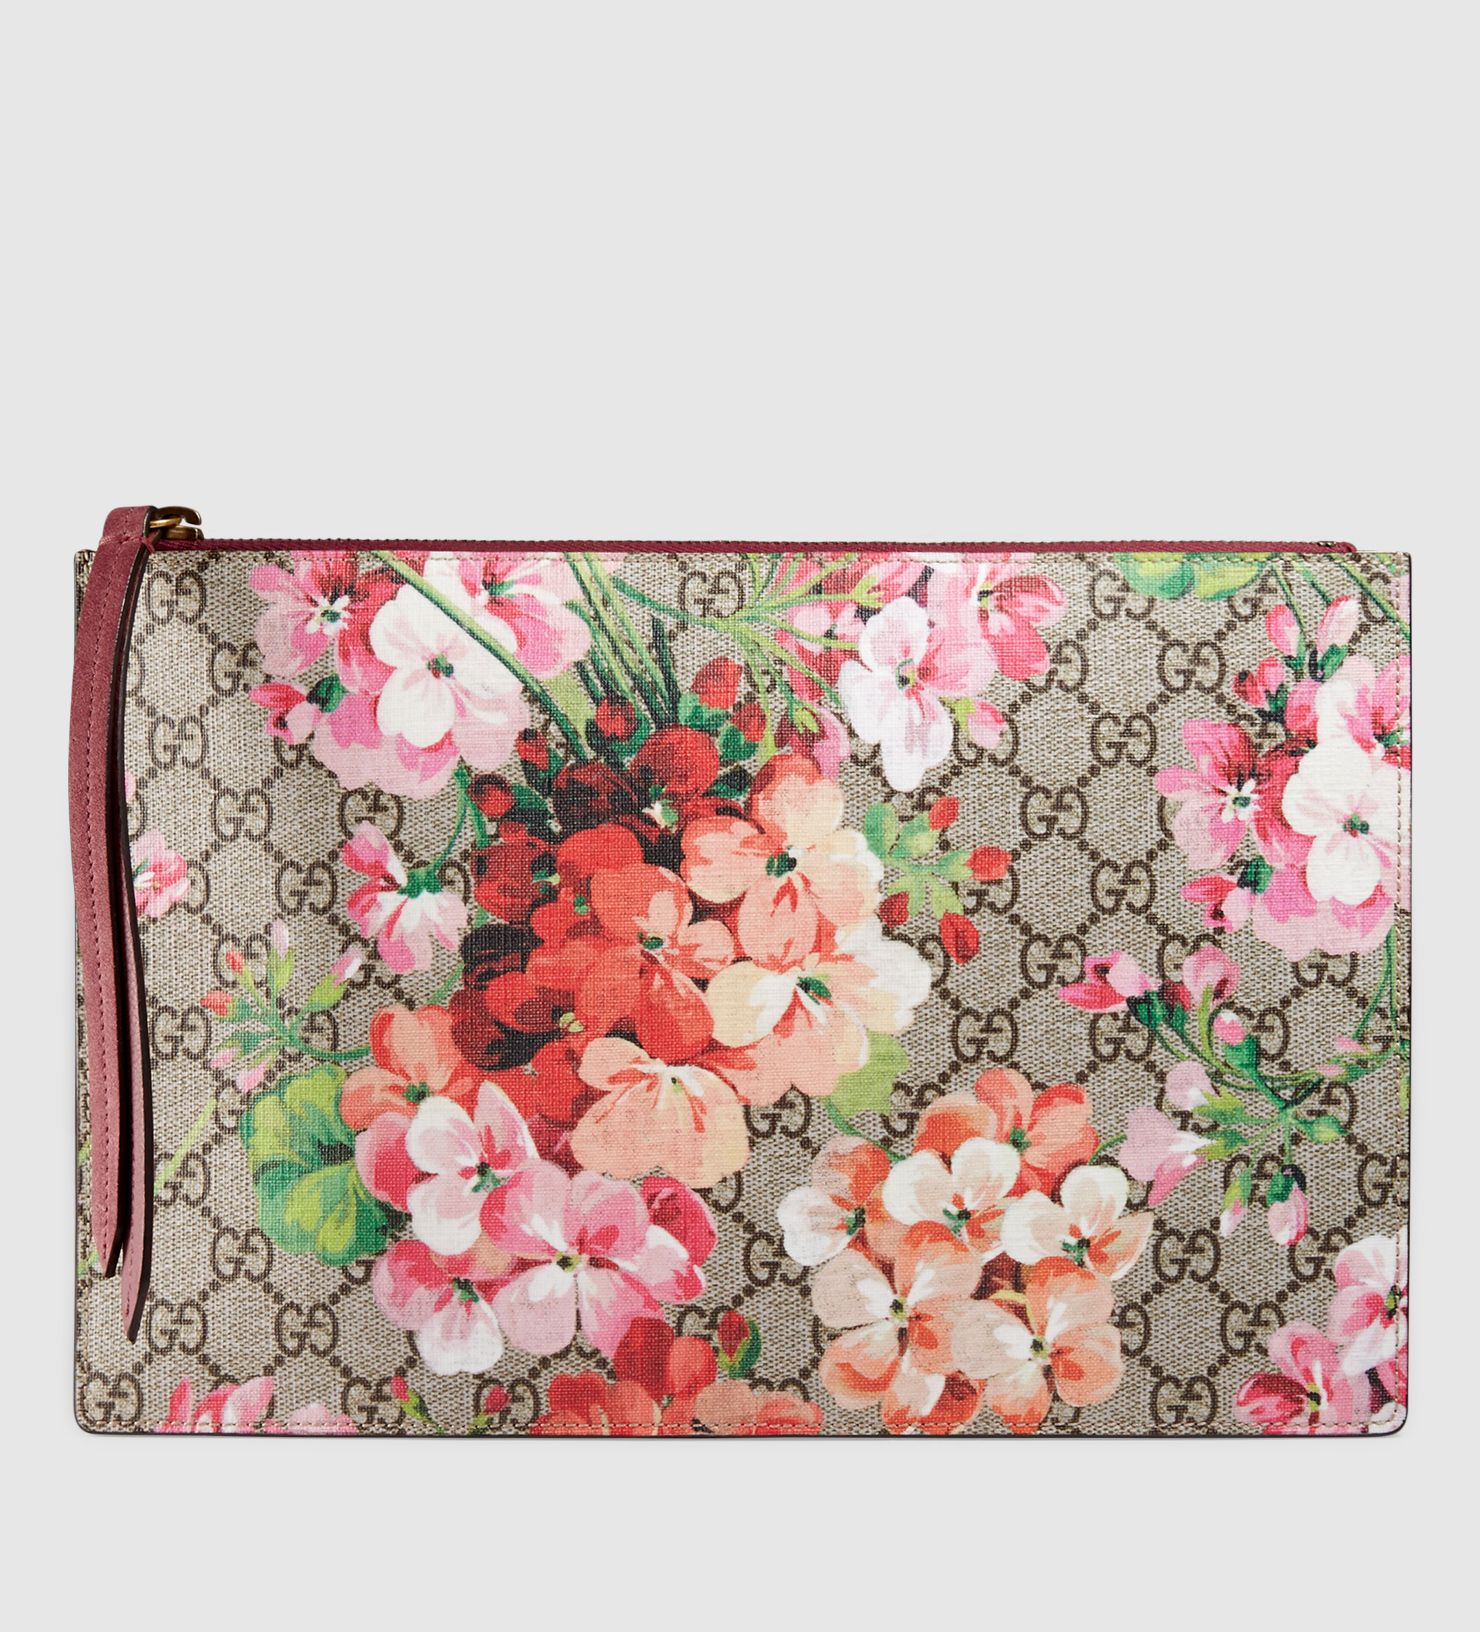 ed190001cd81 Gucci gg blooms supreme canvas pouch | Fashion & Style | Gucci pouch ...